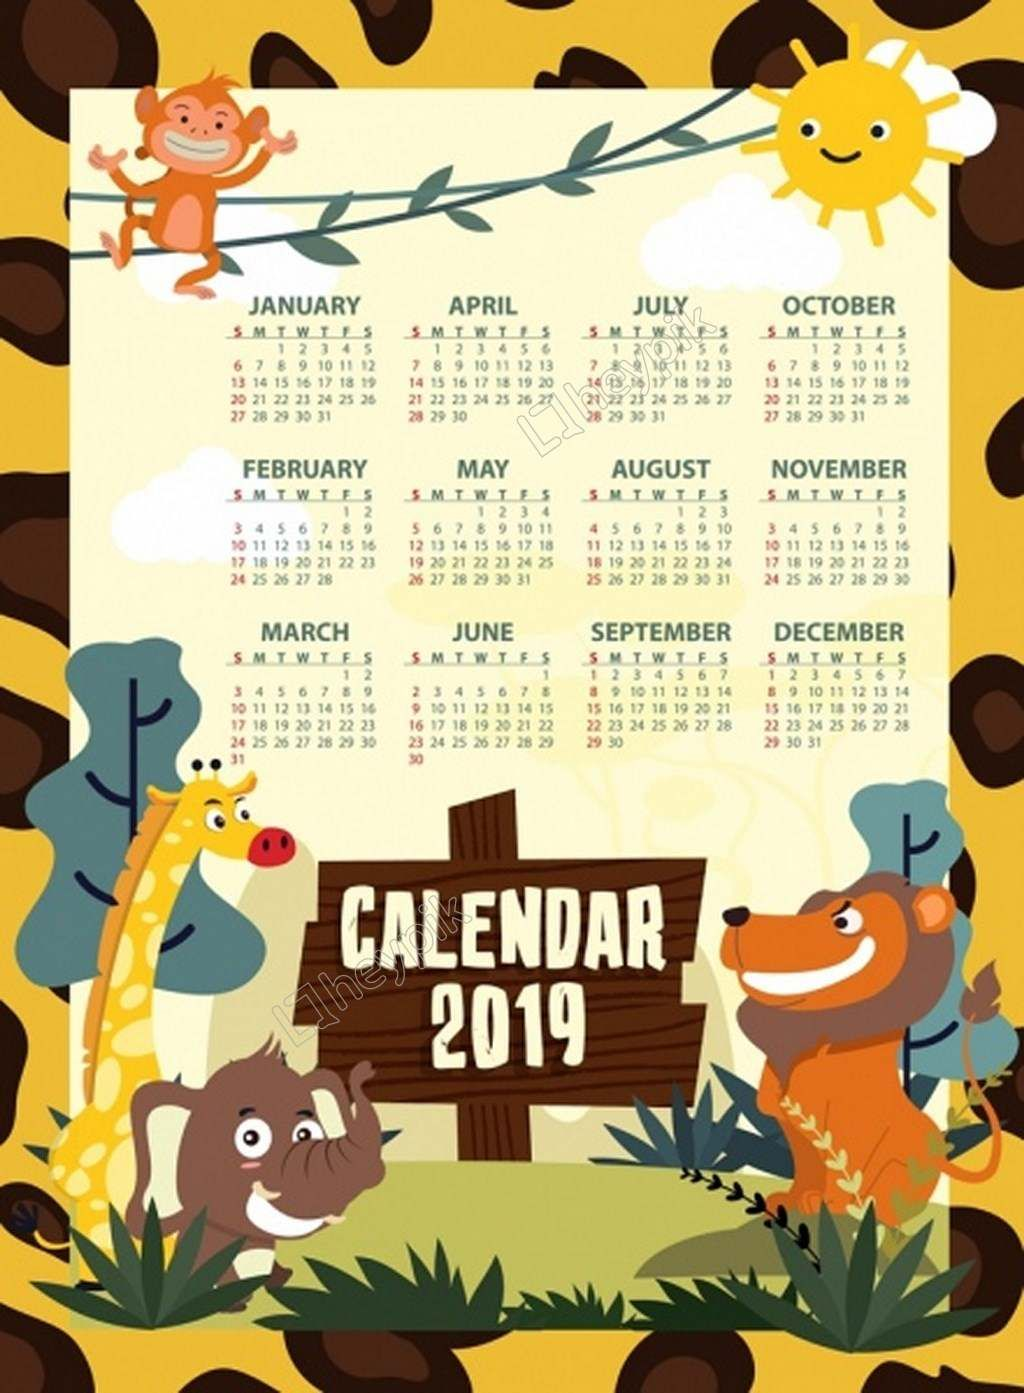 The Monkey Tree Trees Calendar Png Vector Calendar Wallpaper Nature Calendar 2019 Calendar